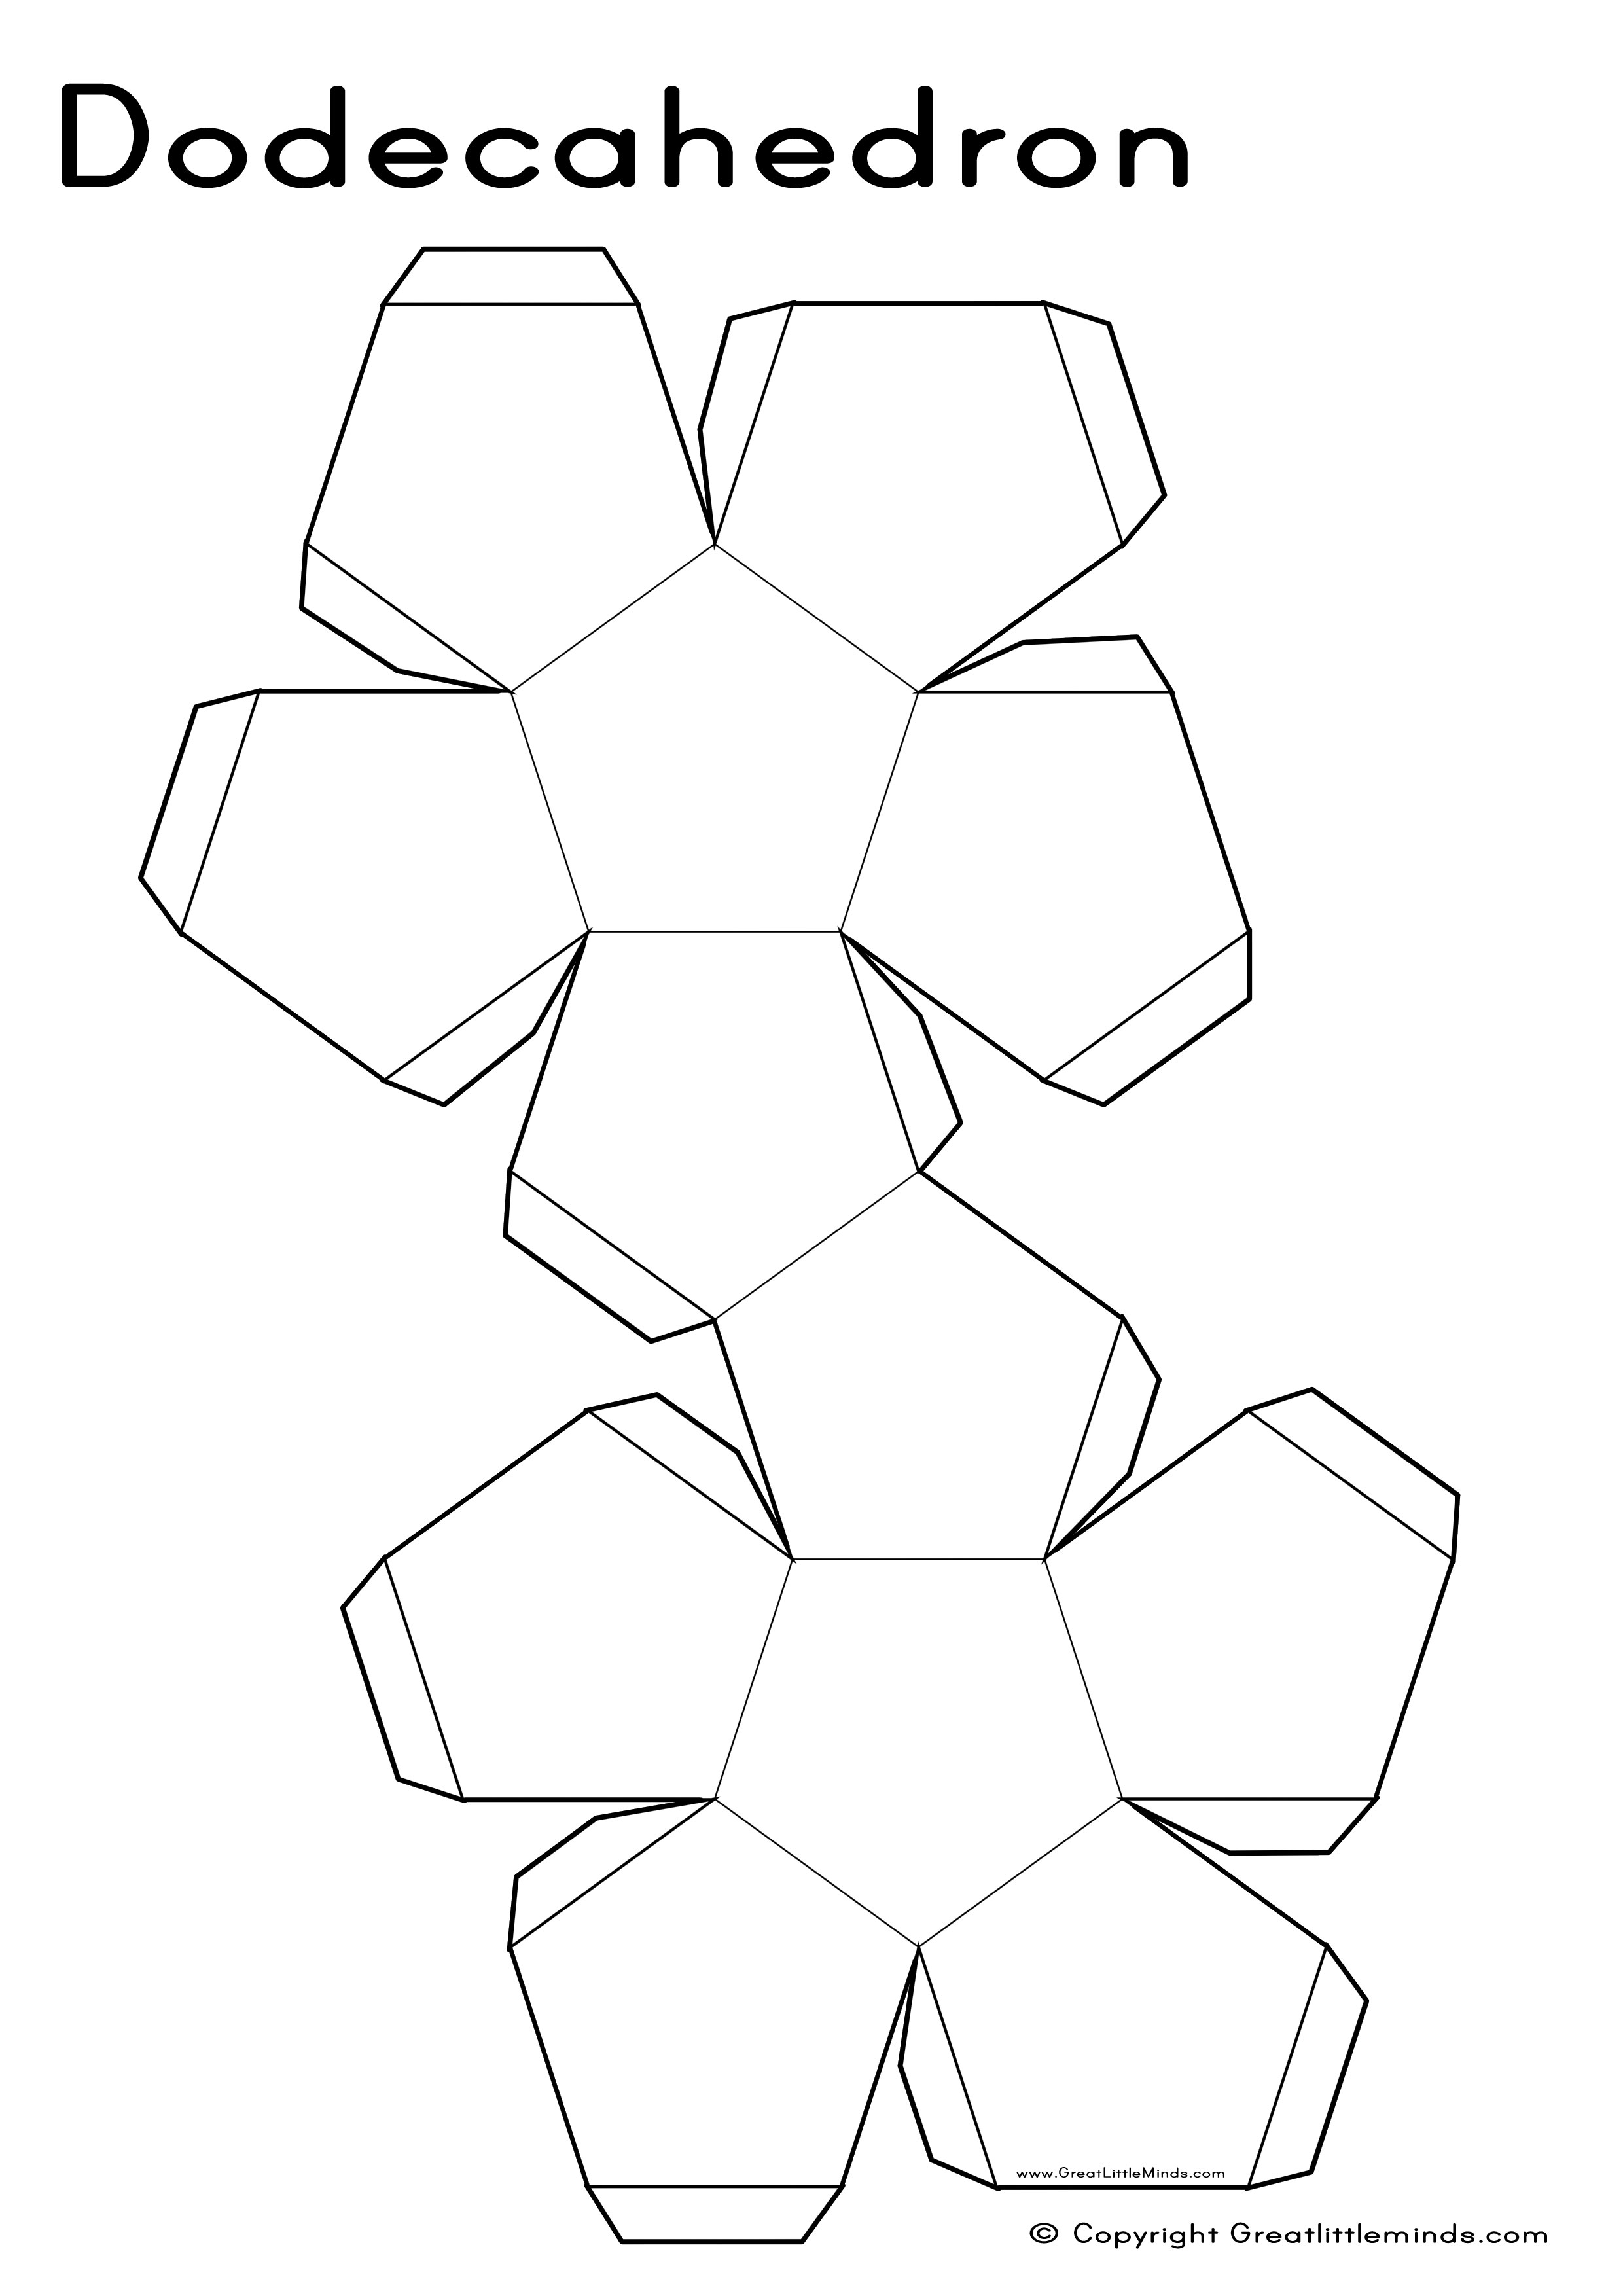 3D Nets - Dodecahedron